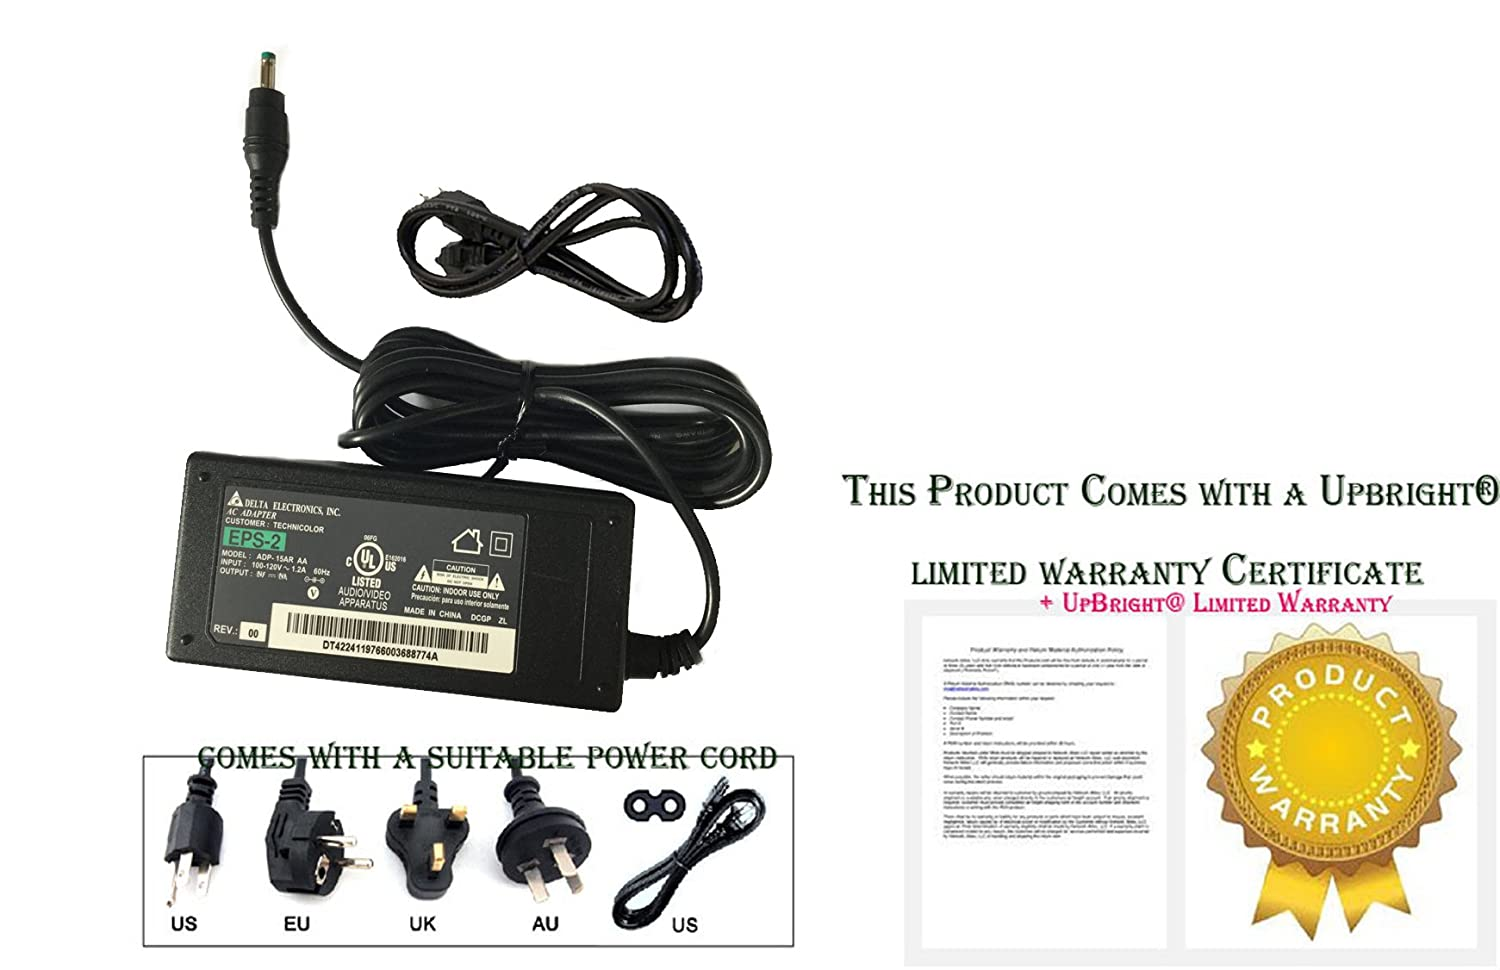 Amazon.com: 2wire Ac Adapter Model Acws011c-05u: Industrial & Scientific